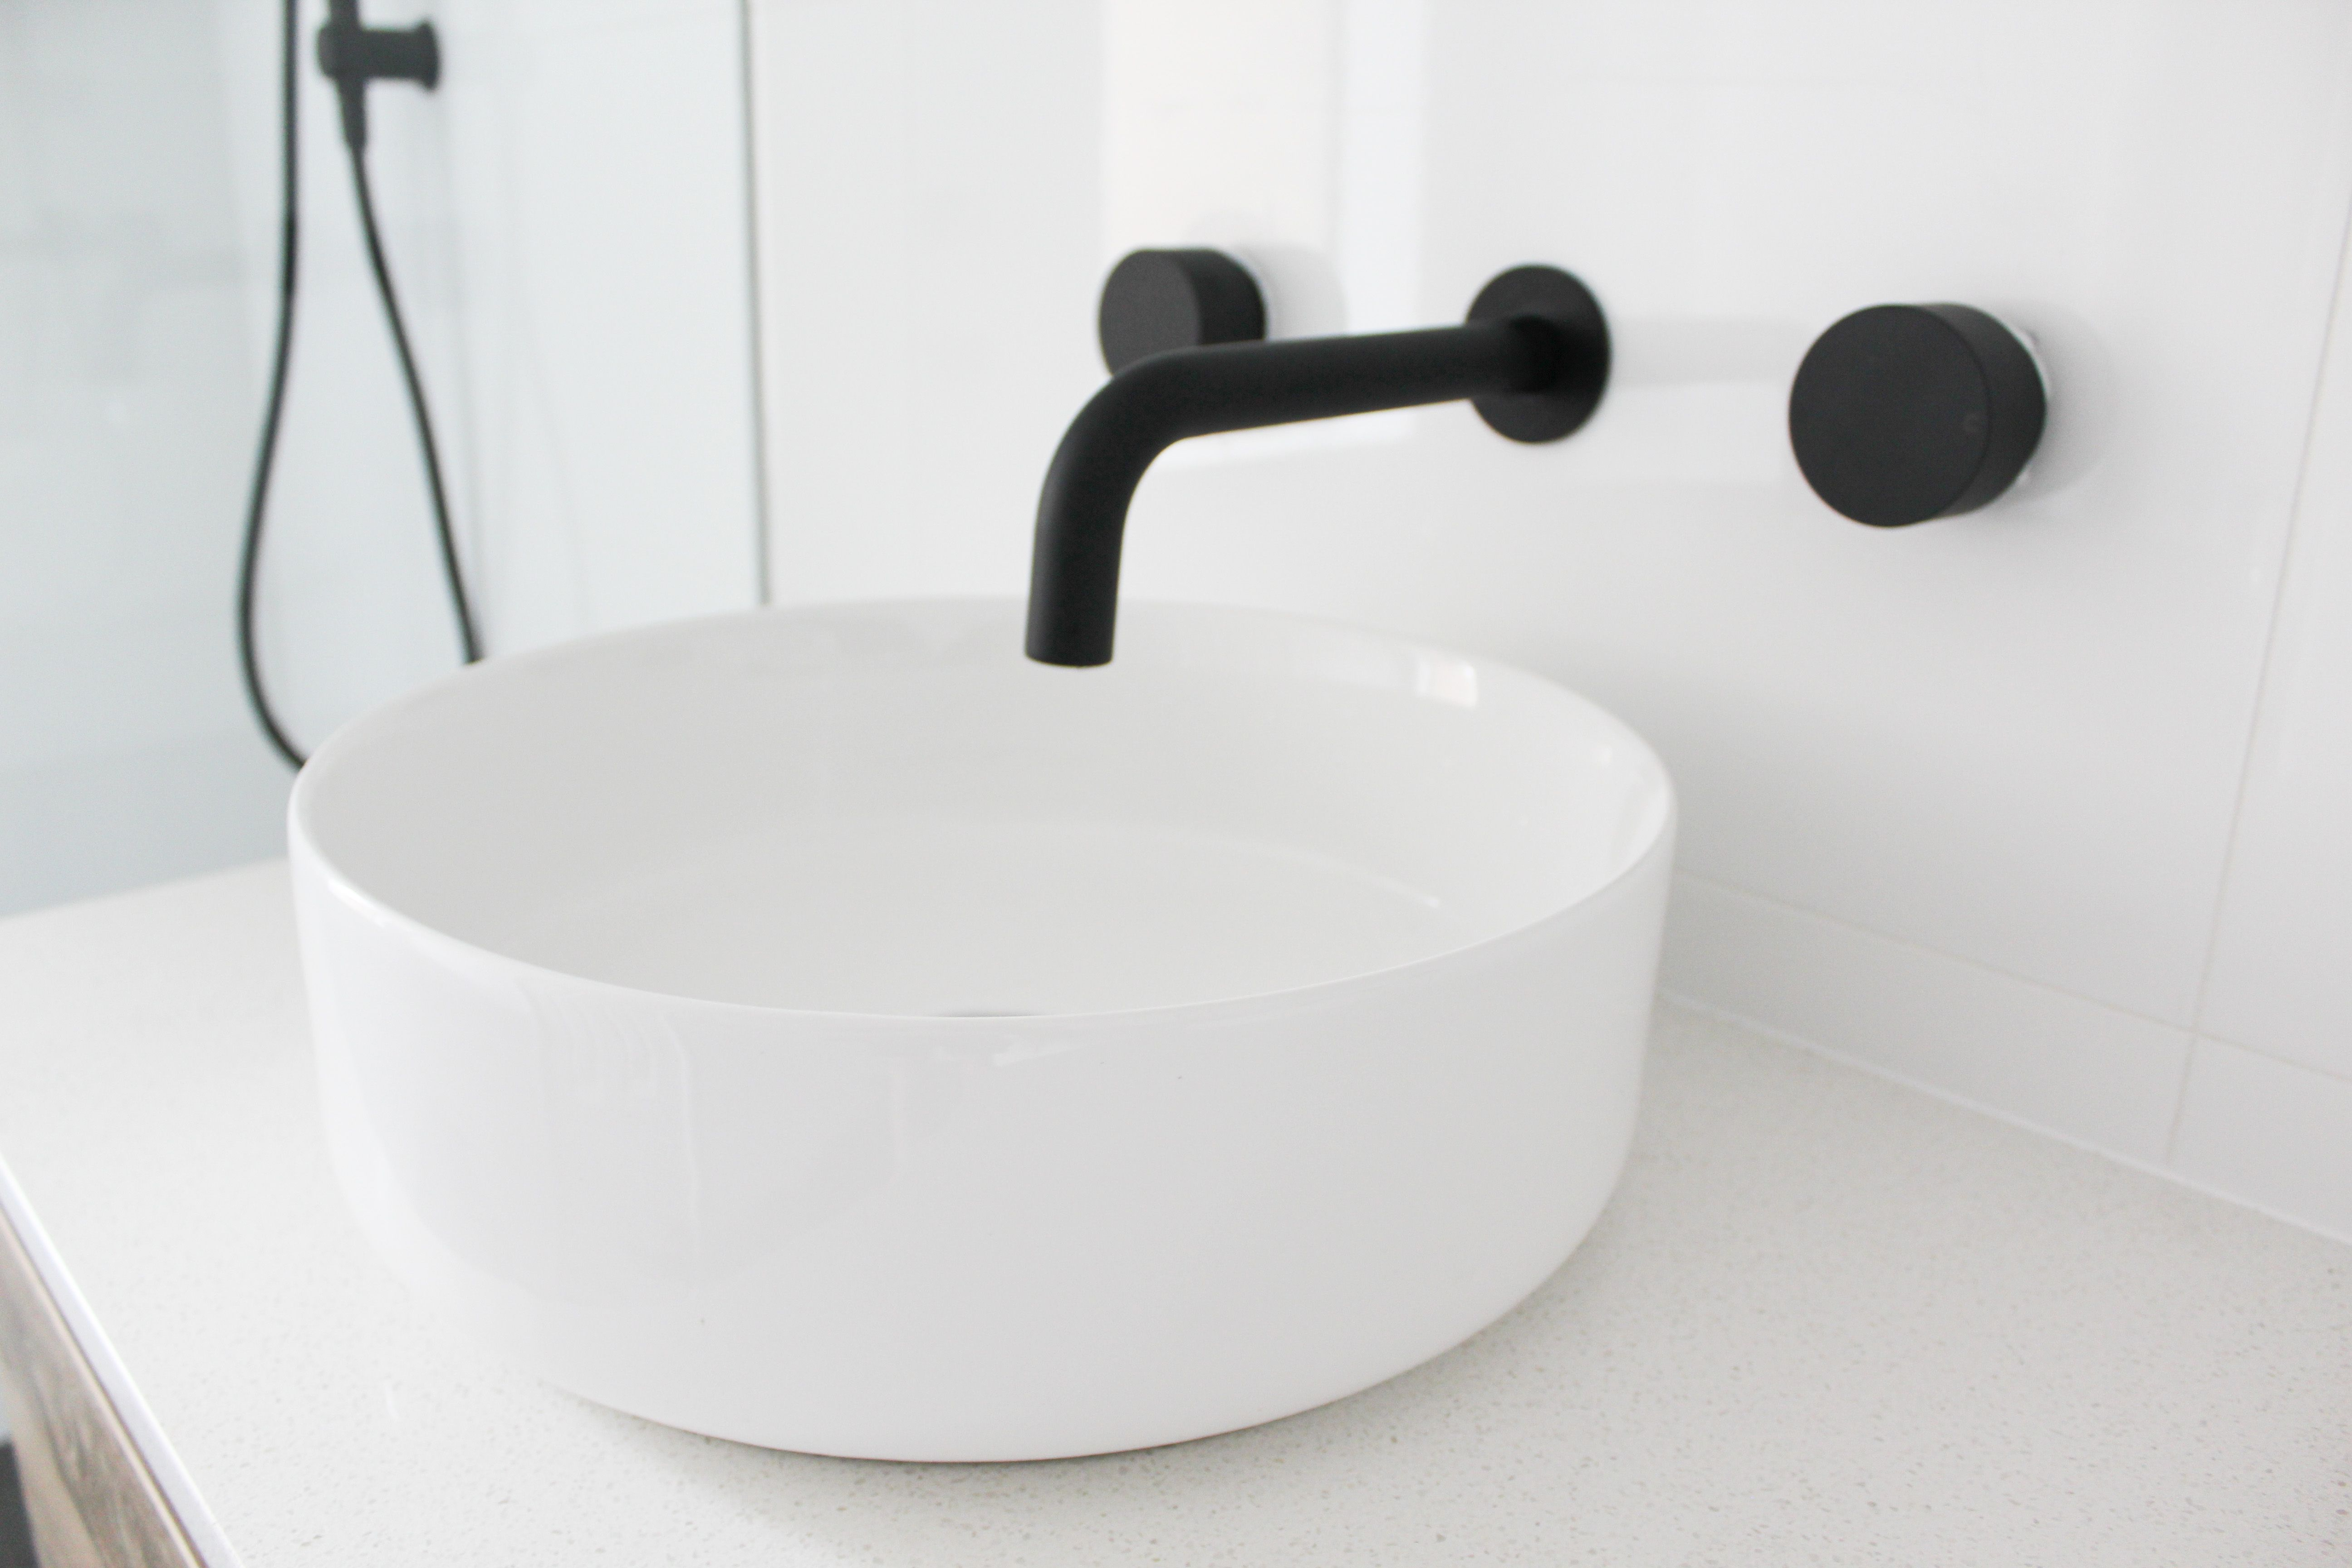 Black Matte Vanity Basin Taps On the Ball Bathrooms ...